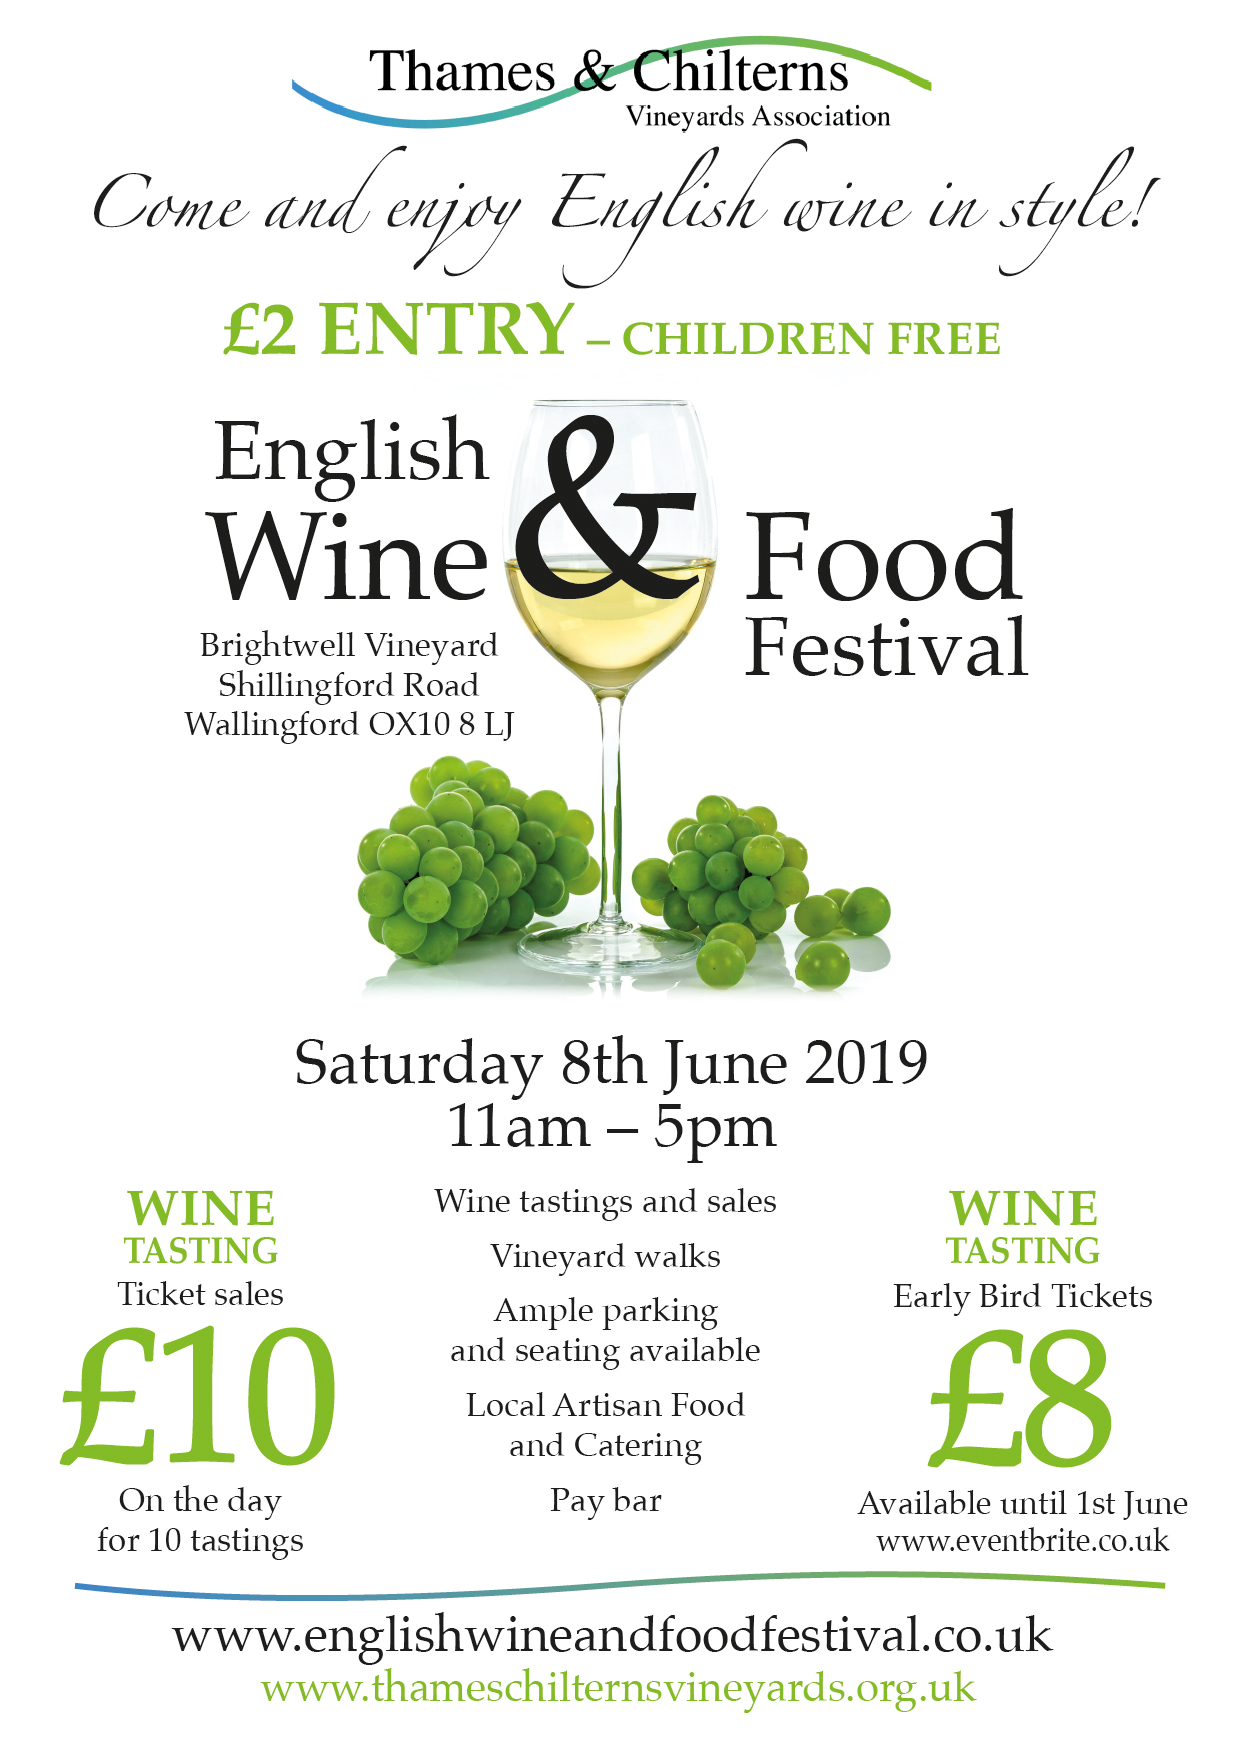 Thames & Chilterns Vineyards Association English Wine & Food Festival